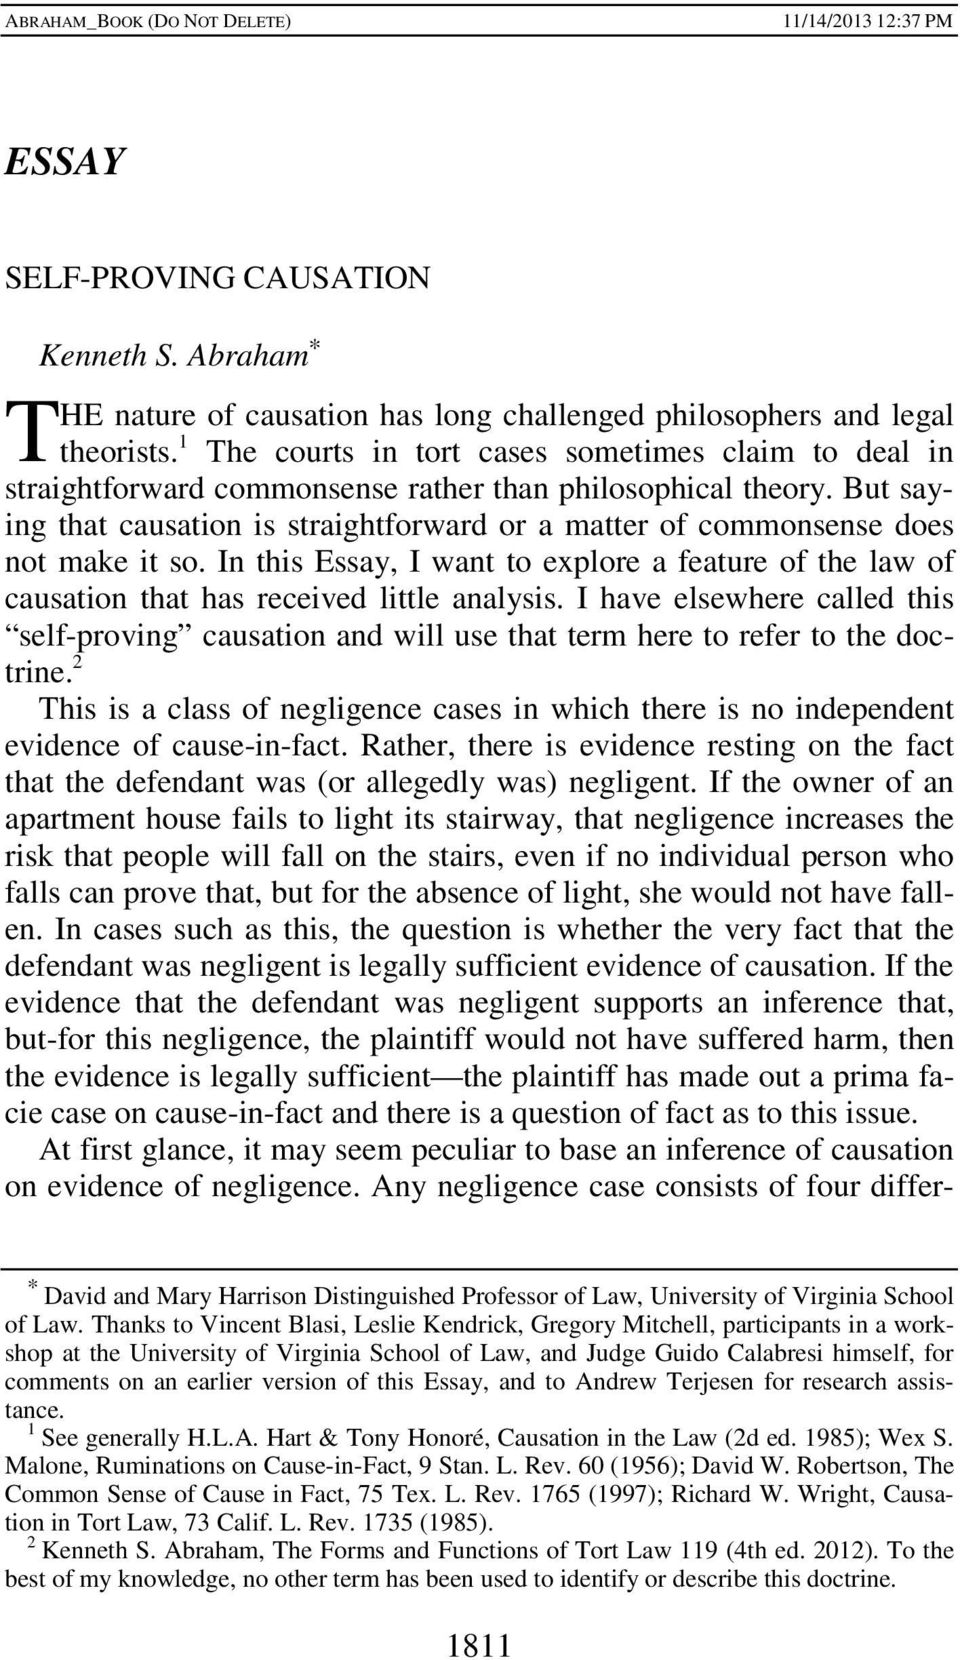 But saying that causation is straightforward or a matter of commonsense does not make it so. In this Essay, I want to explore a feature of the law of causation that has received little analysis.